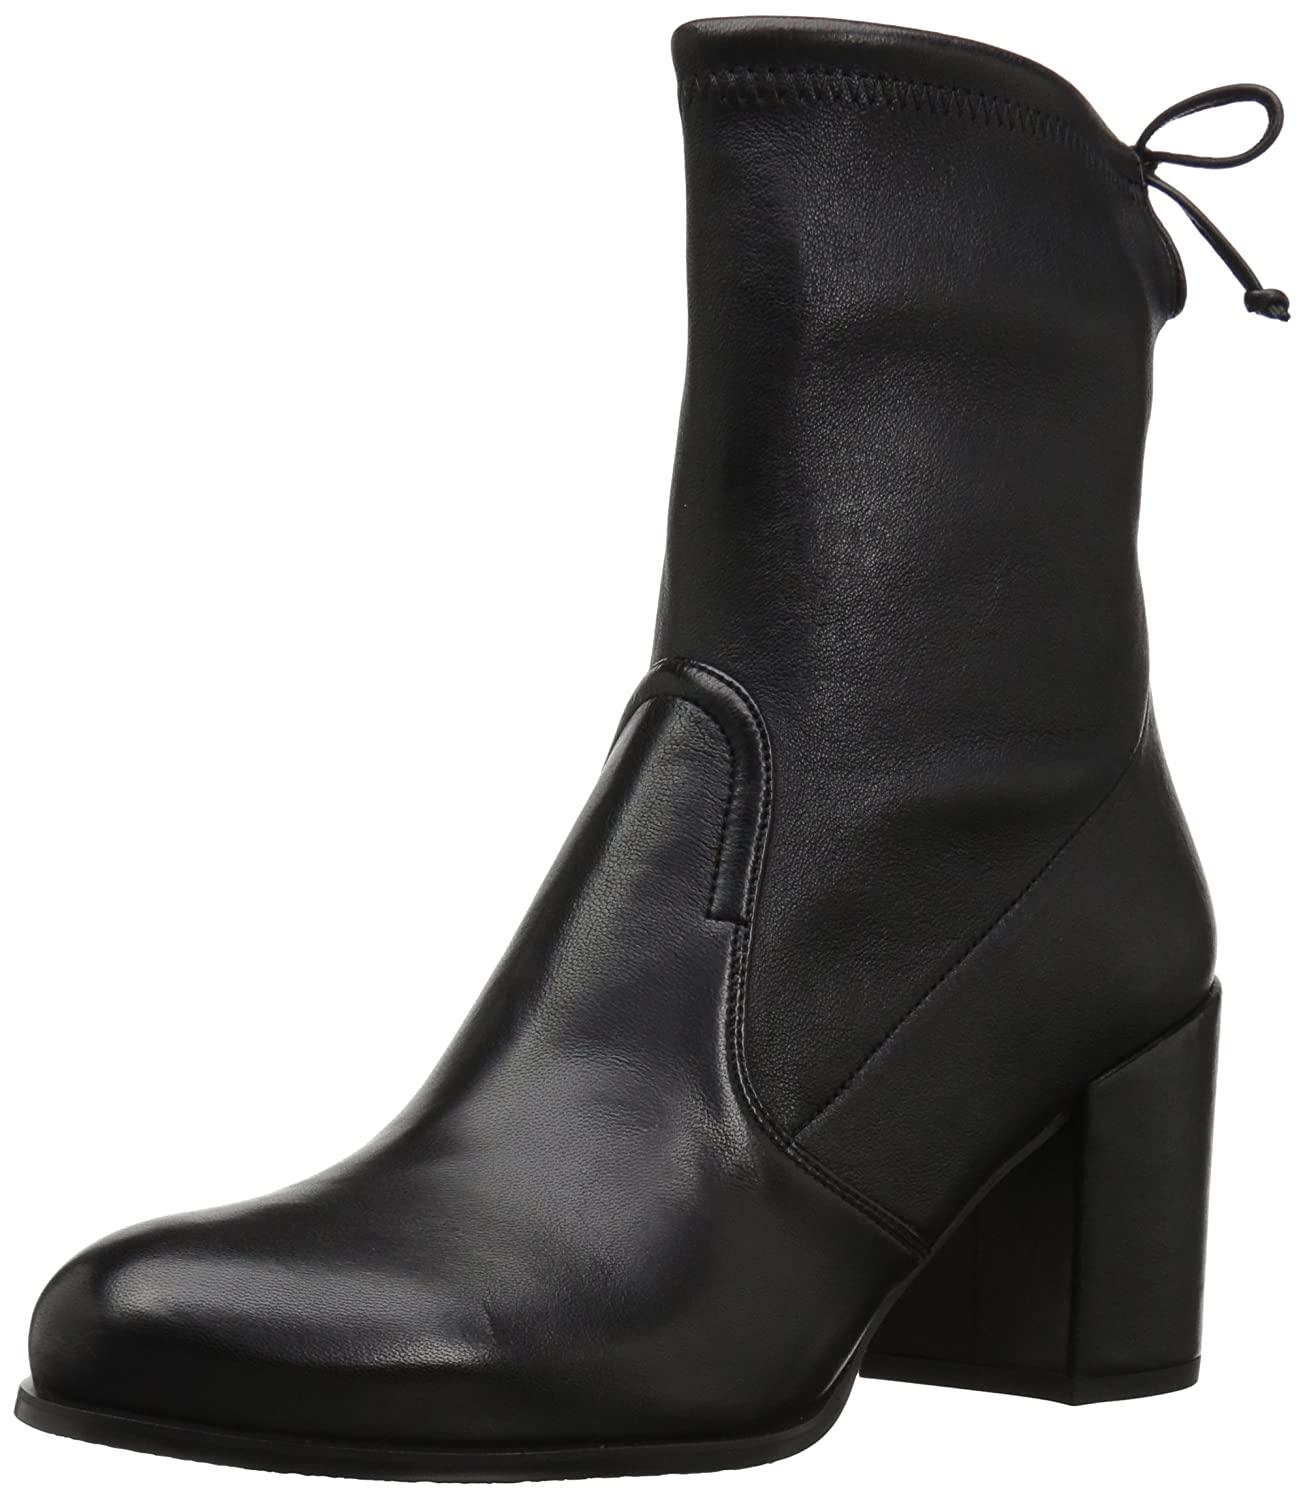 Stuart Weitzman Women's Shorty Ankle Boot B06XPLM55N 10.5 B(M) US|Nero